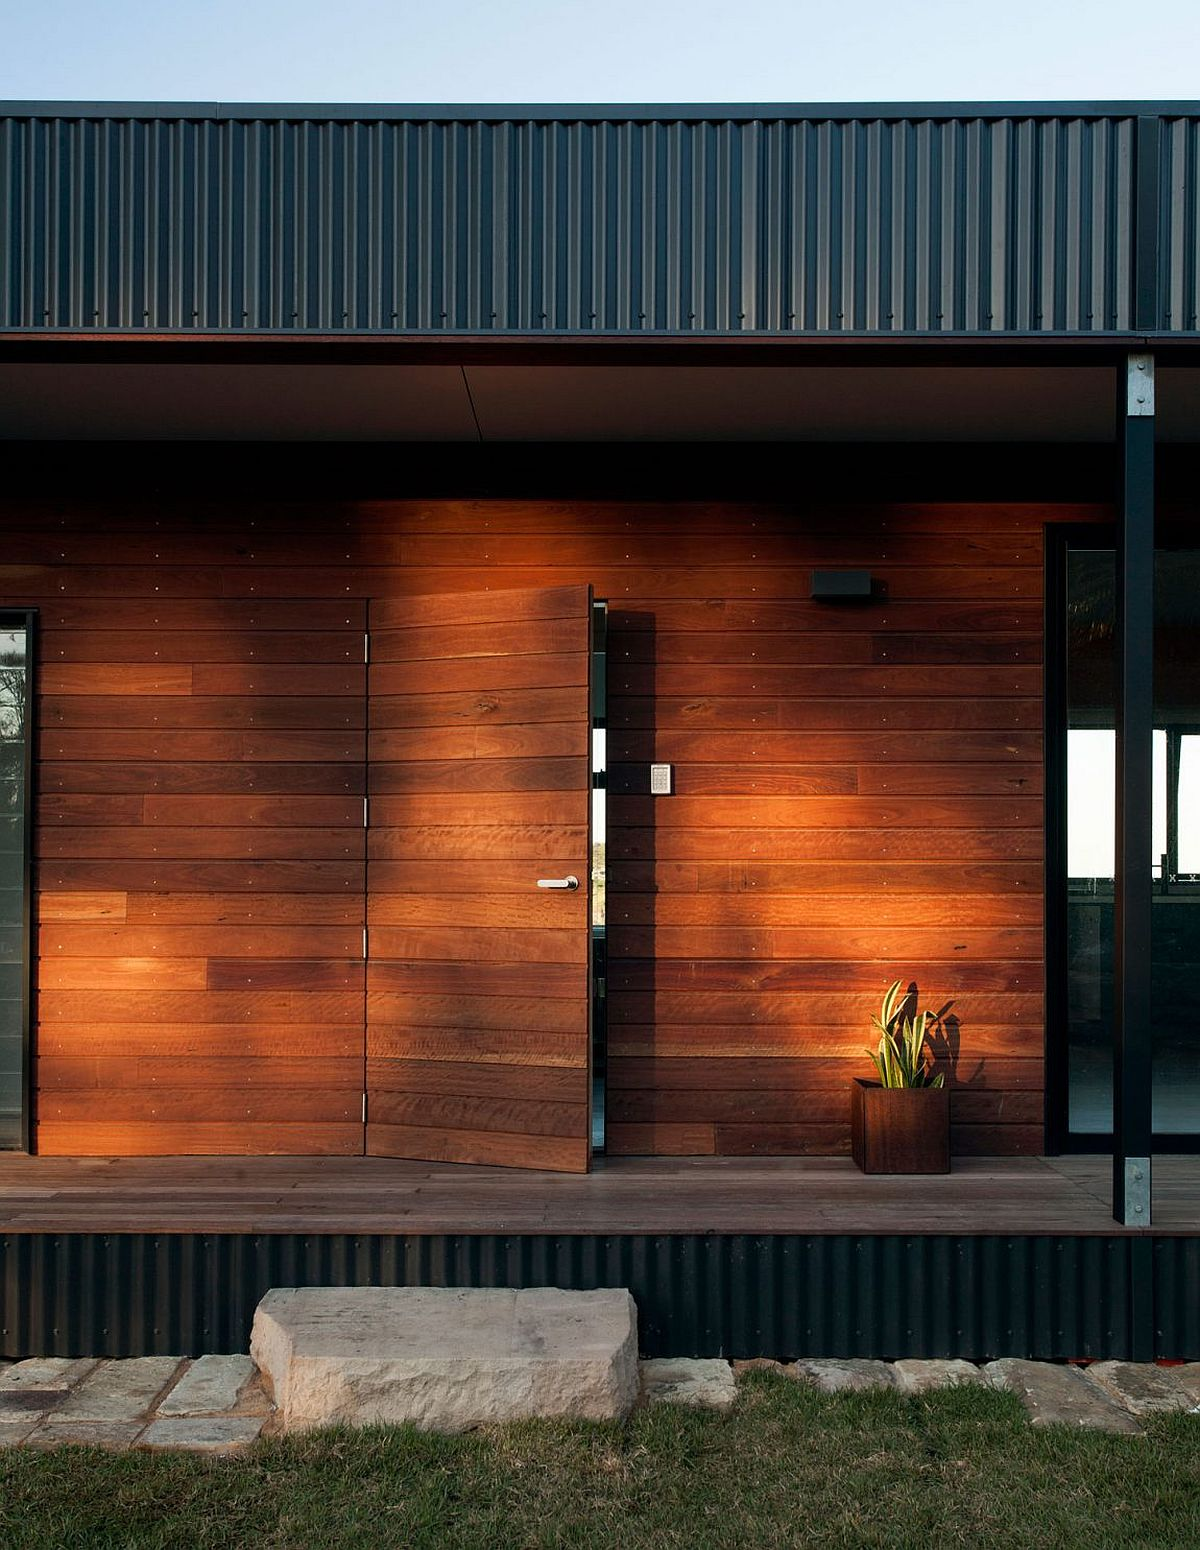 Locally sourced wood and metal shape the exterior of the modular house